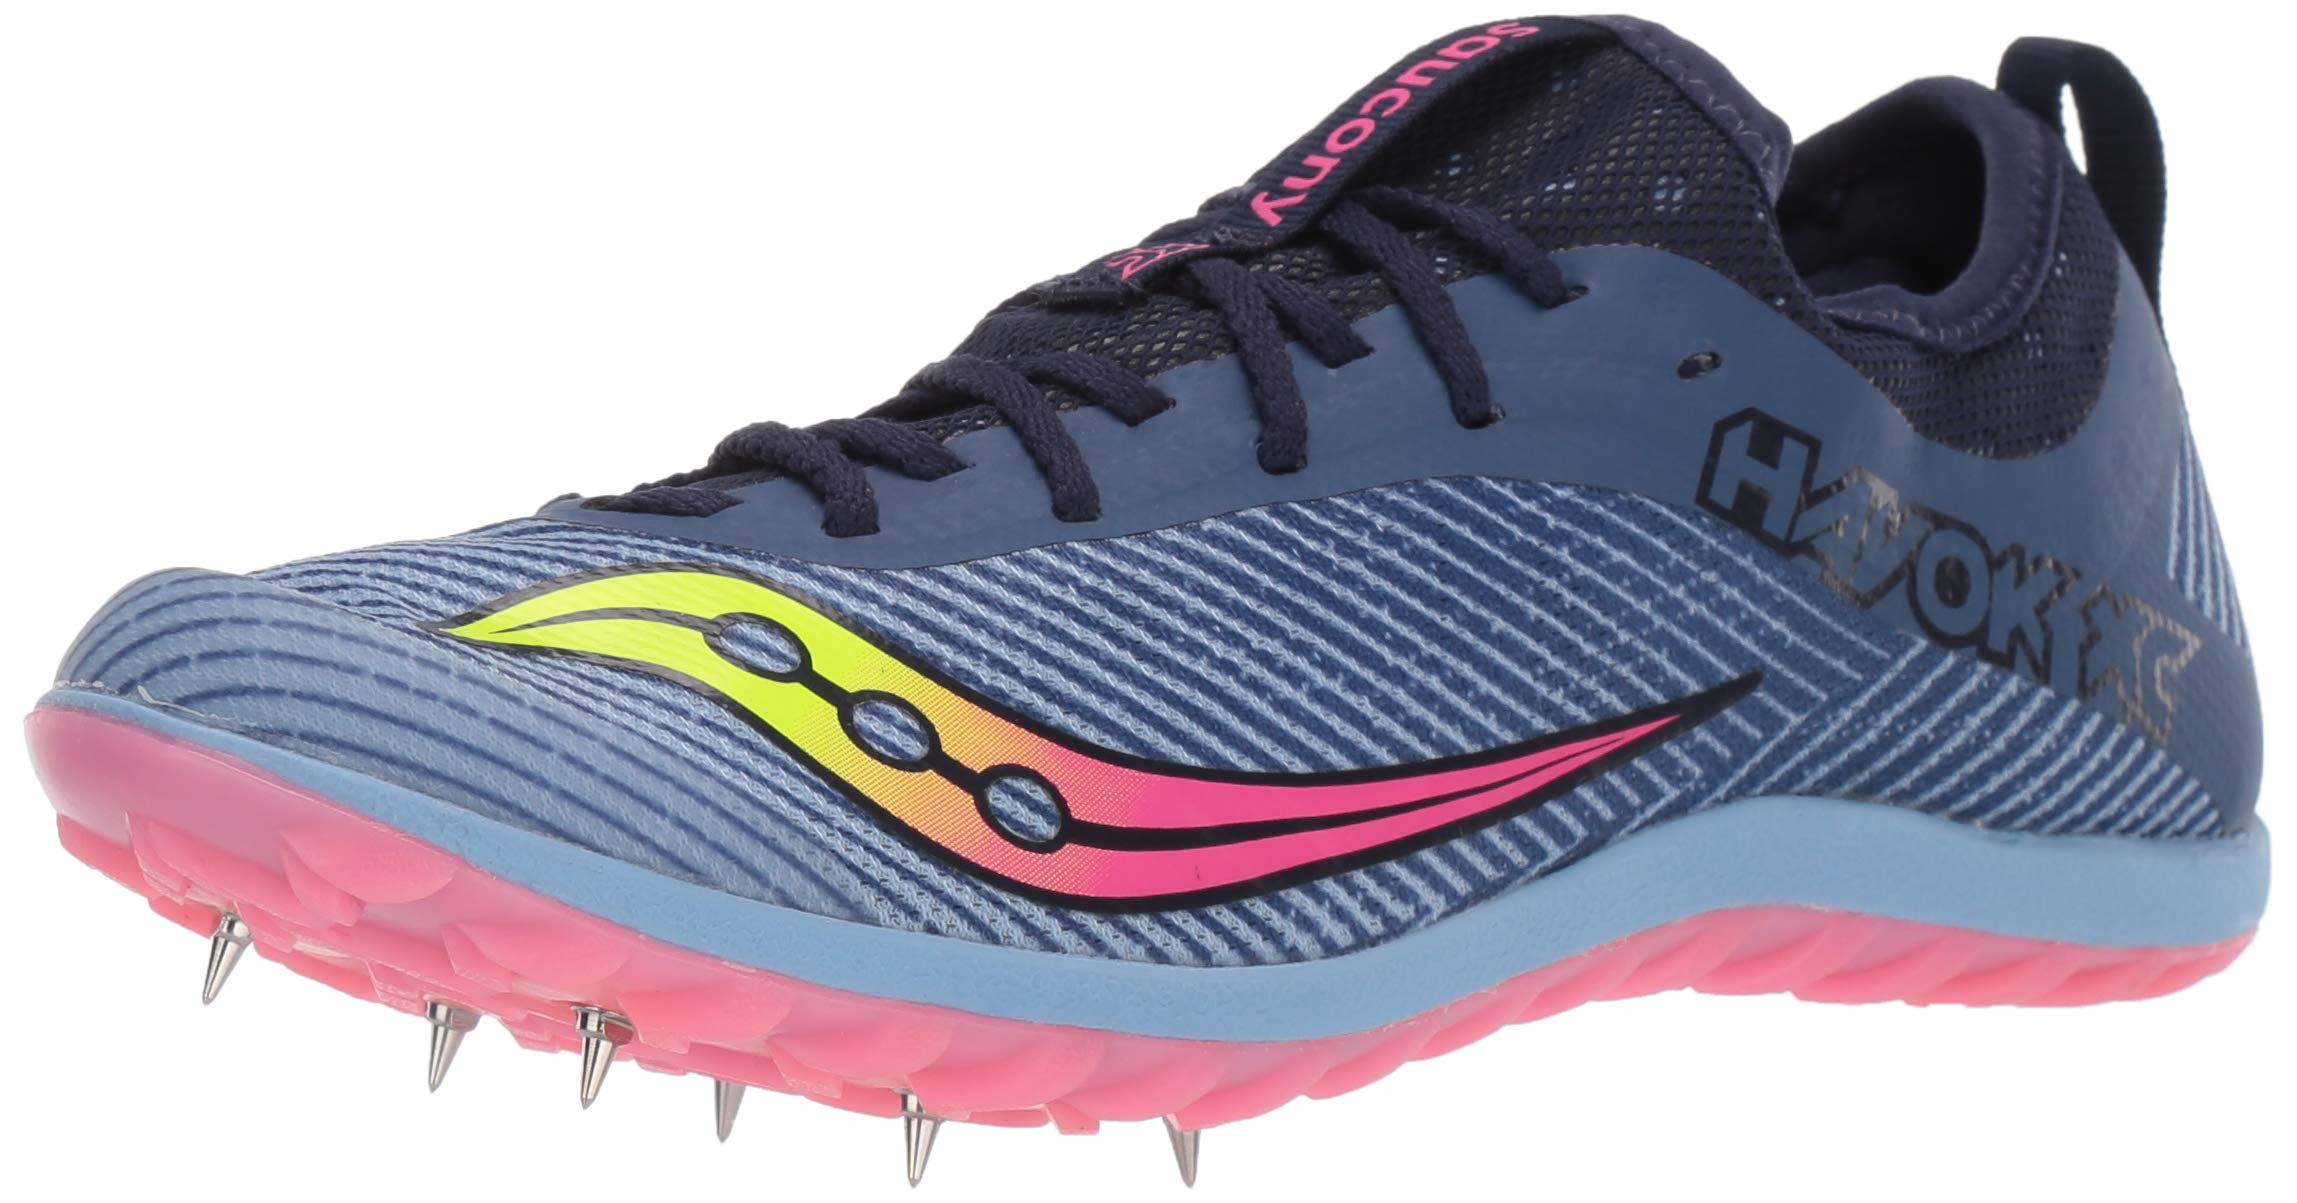 Saucony Women's Havok XC2 Track and Field Shoe, Blue/Citron/Vizi Pink, 11 Medium US by Saucony